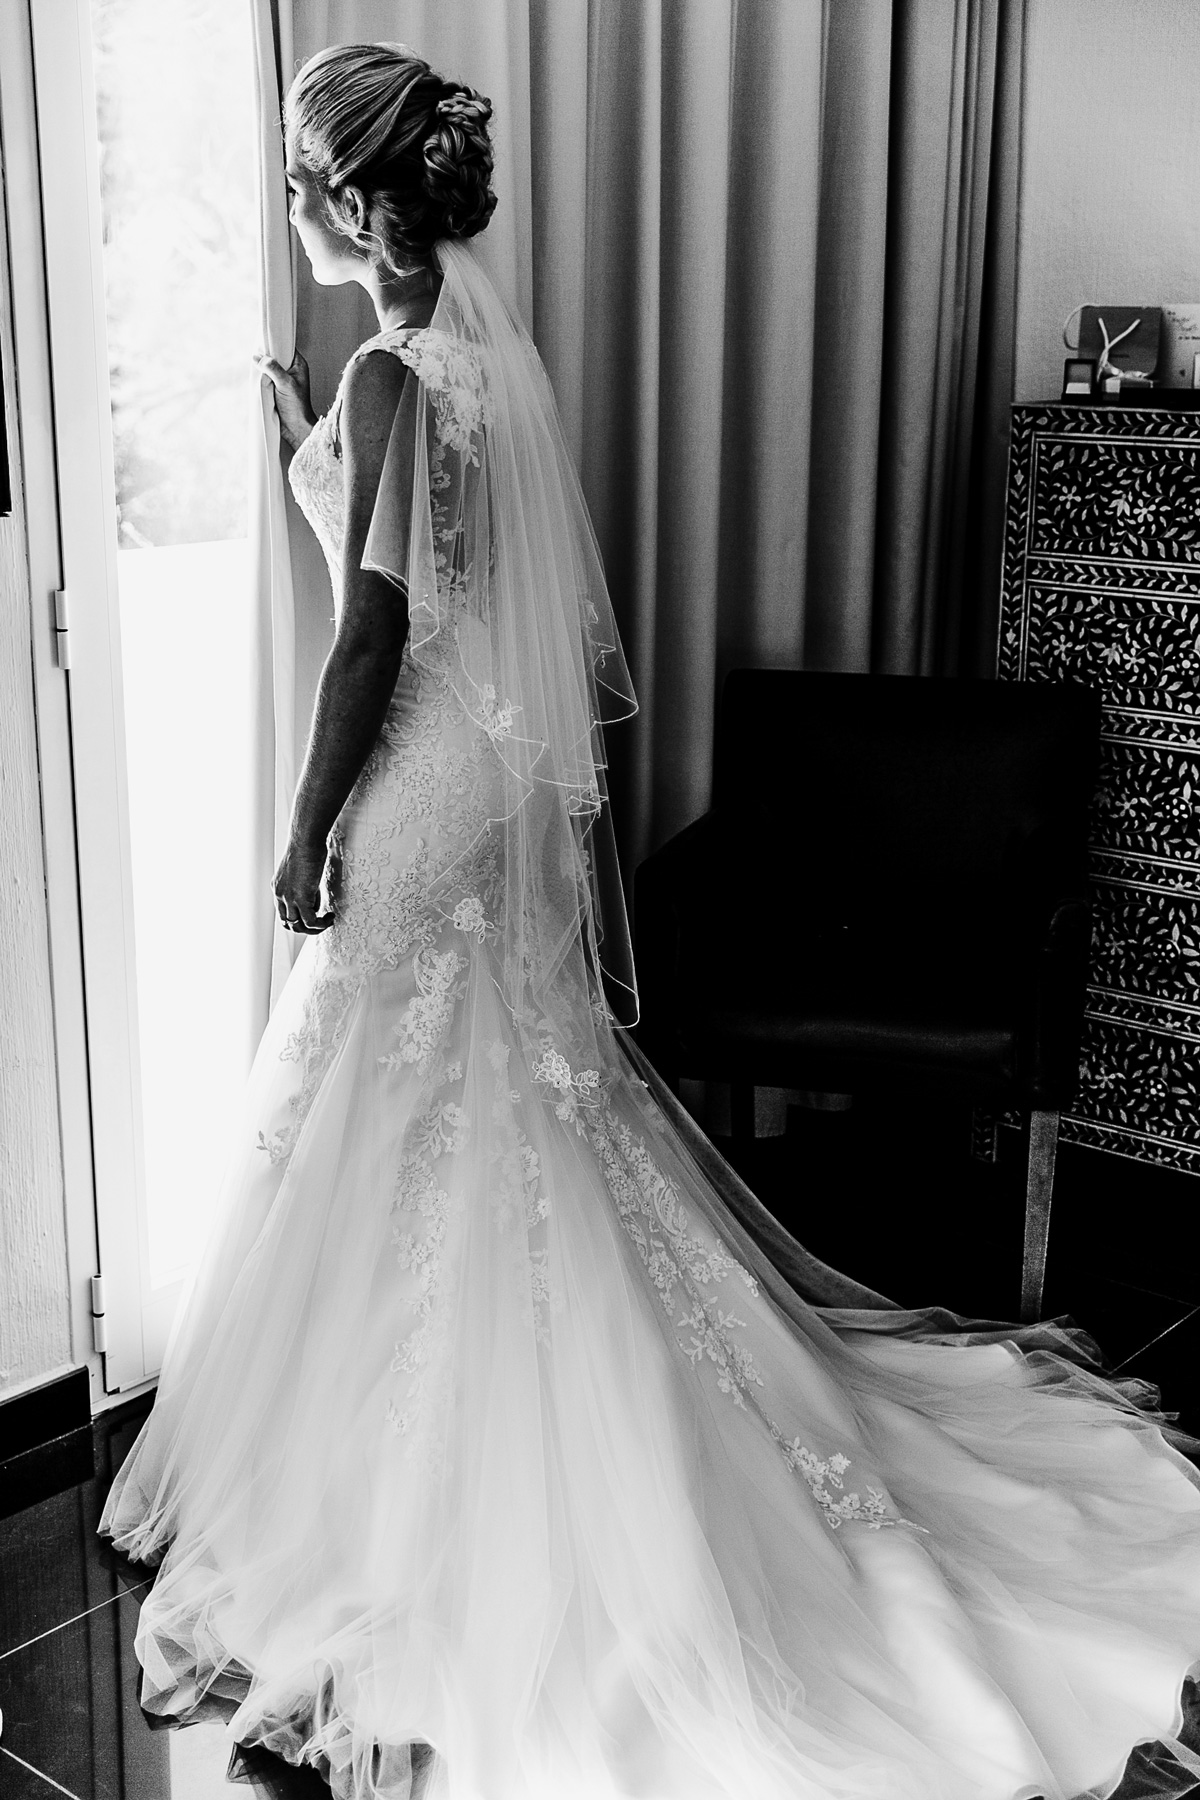 Bride looking out of the window